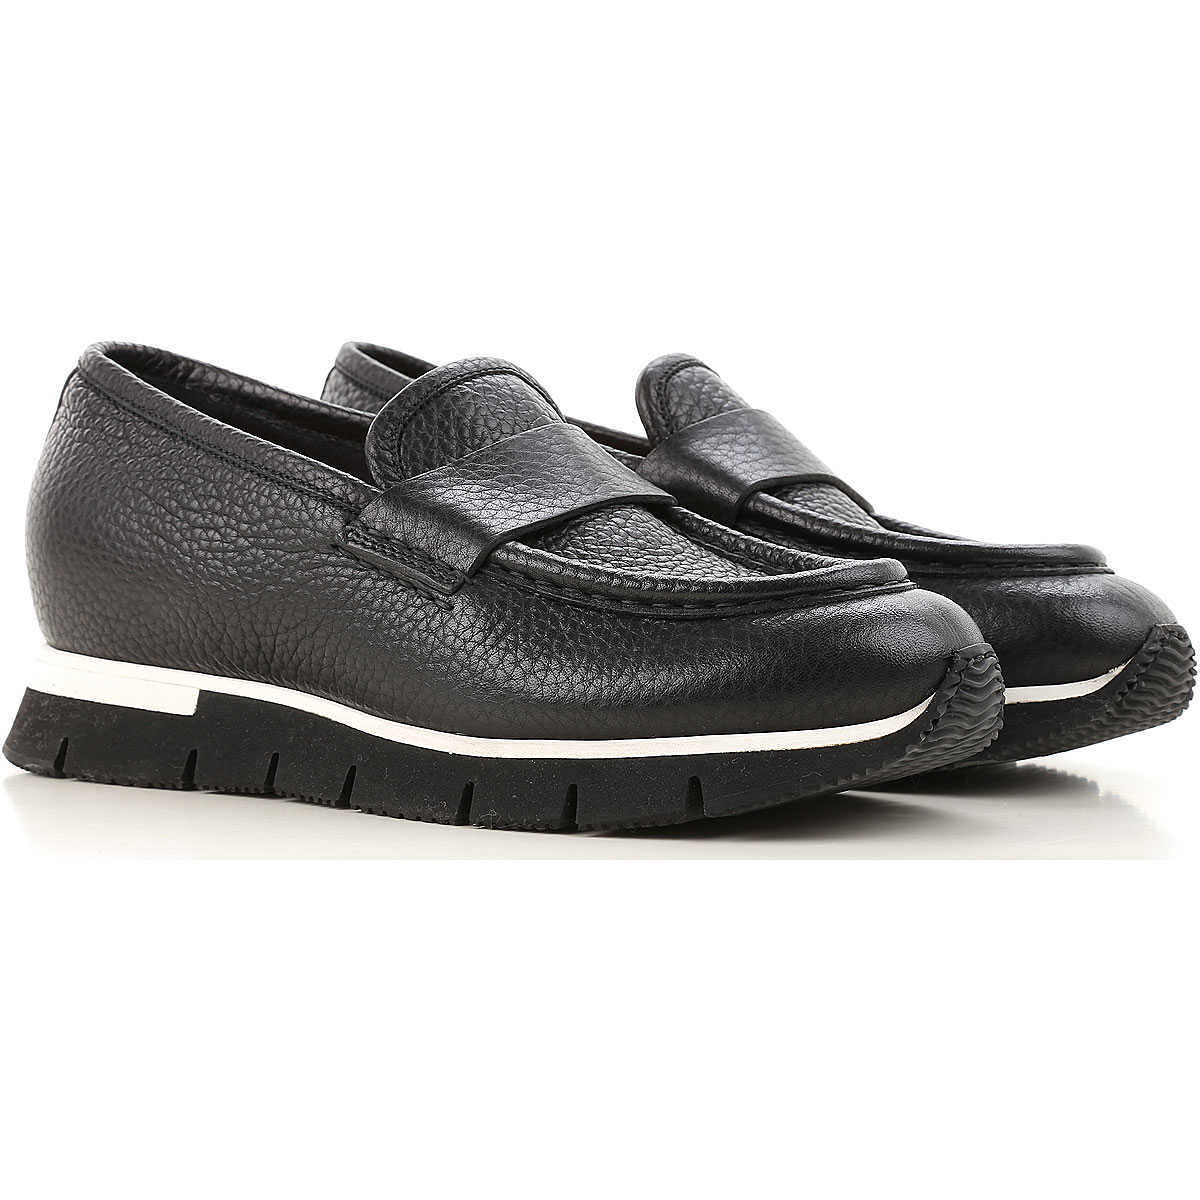 Santoni Loafers for Women in Outlet Black Canada - GOOFASH - Womens FLAT SHOES